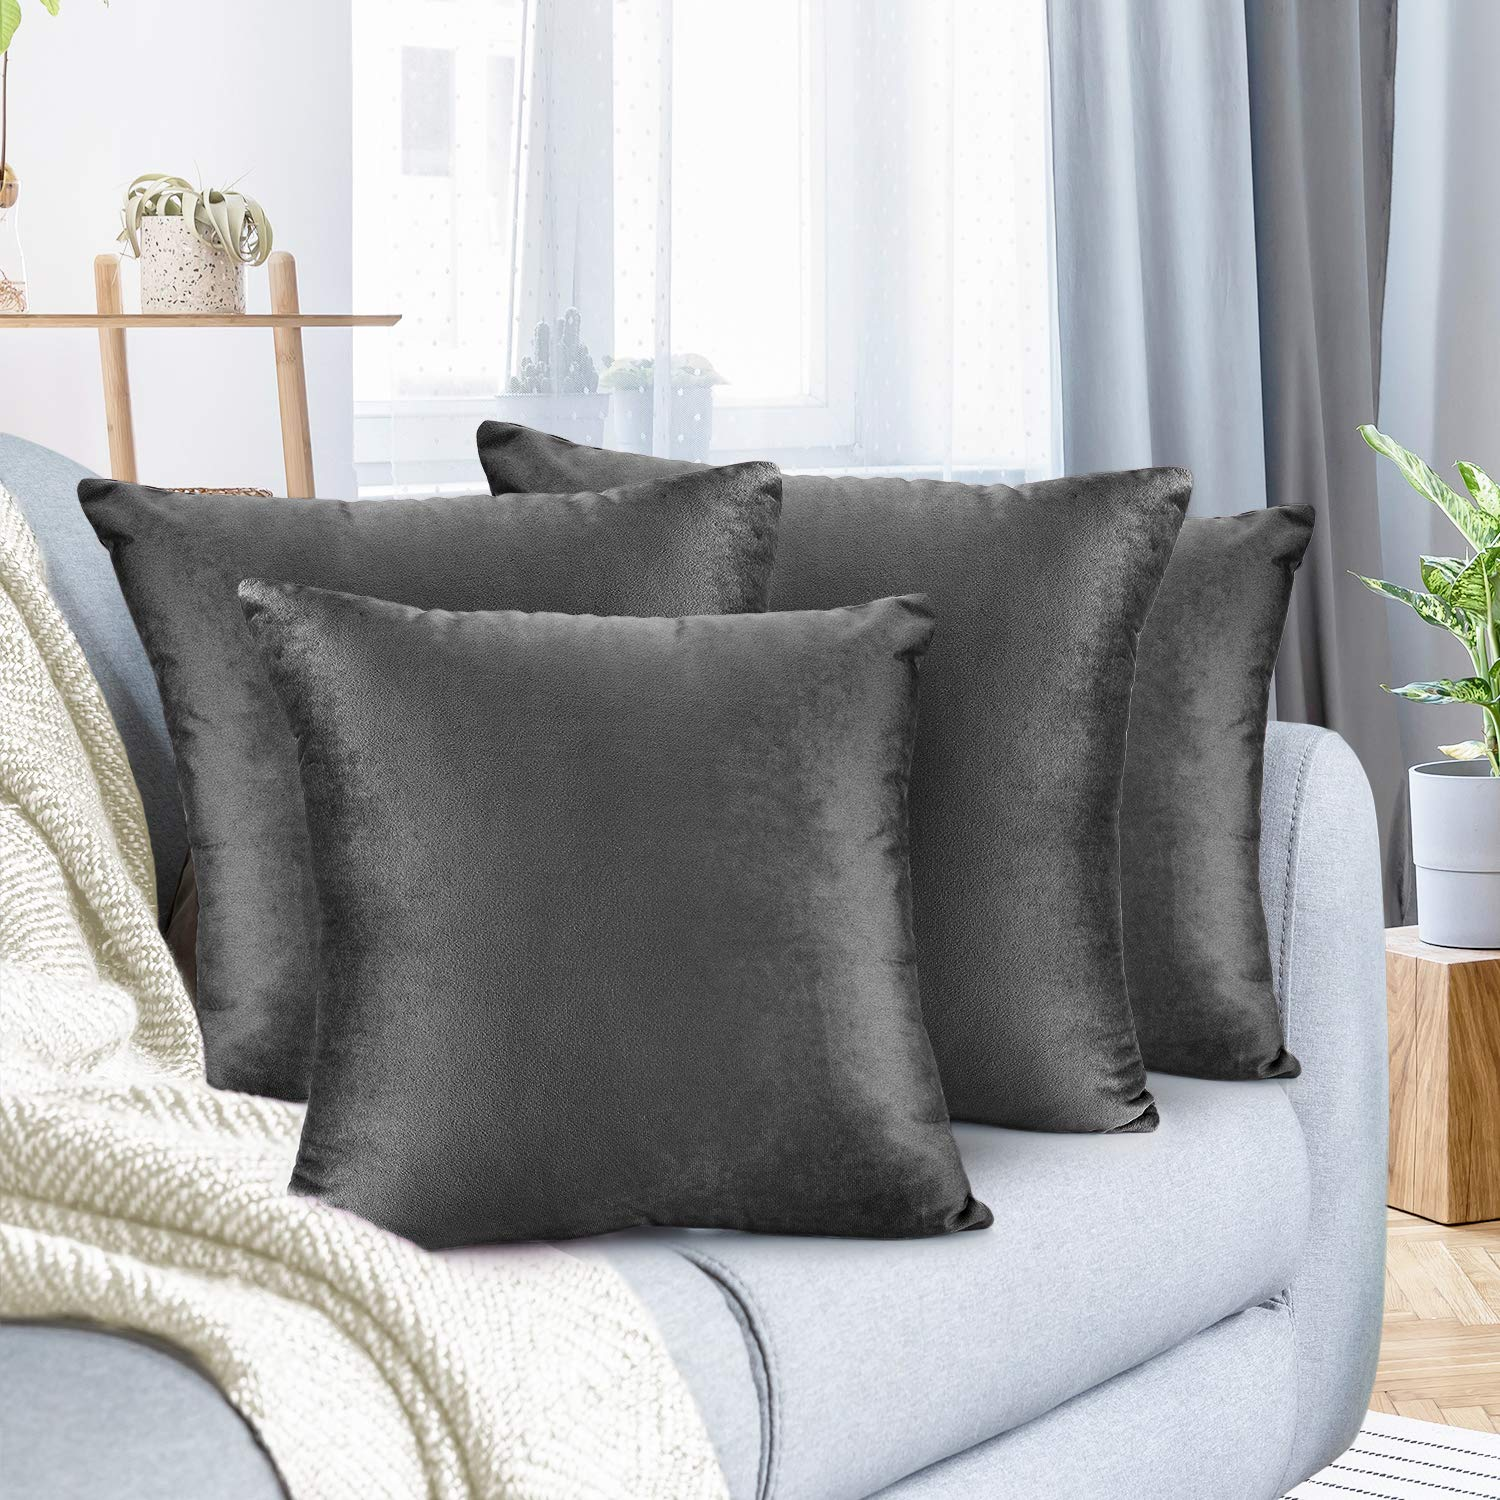 """Nestl Bedding Throw Pillow Cover 26"""" x 26"""" Soft Square Decorative Throw Pillow Covers Cozy Velvet Cushion Case for Sofa Couch Bedroom, Set of 4, Charcoal Stone Gray"""